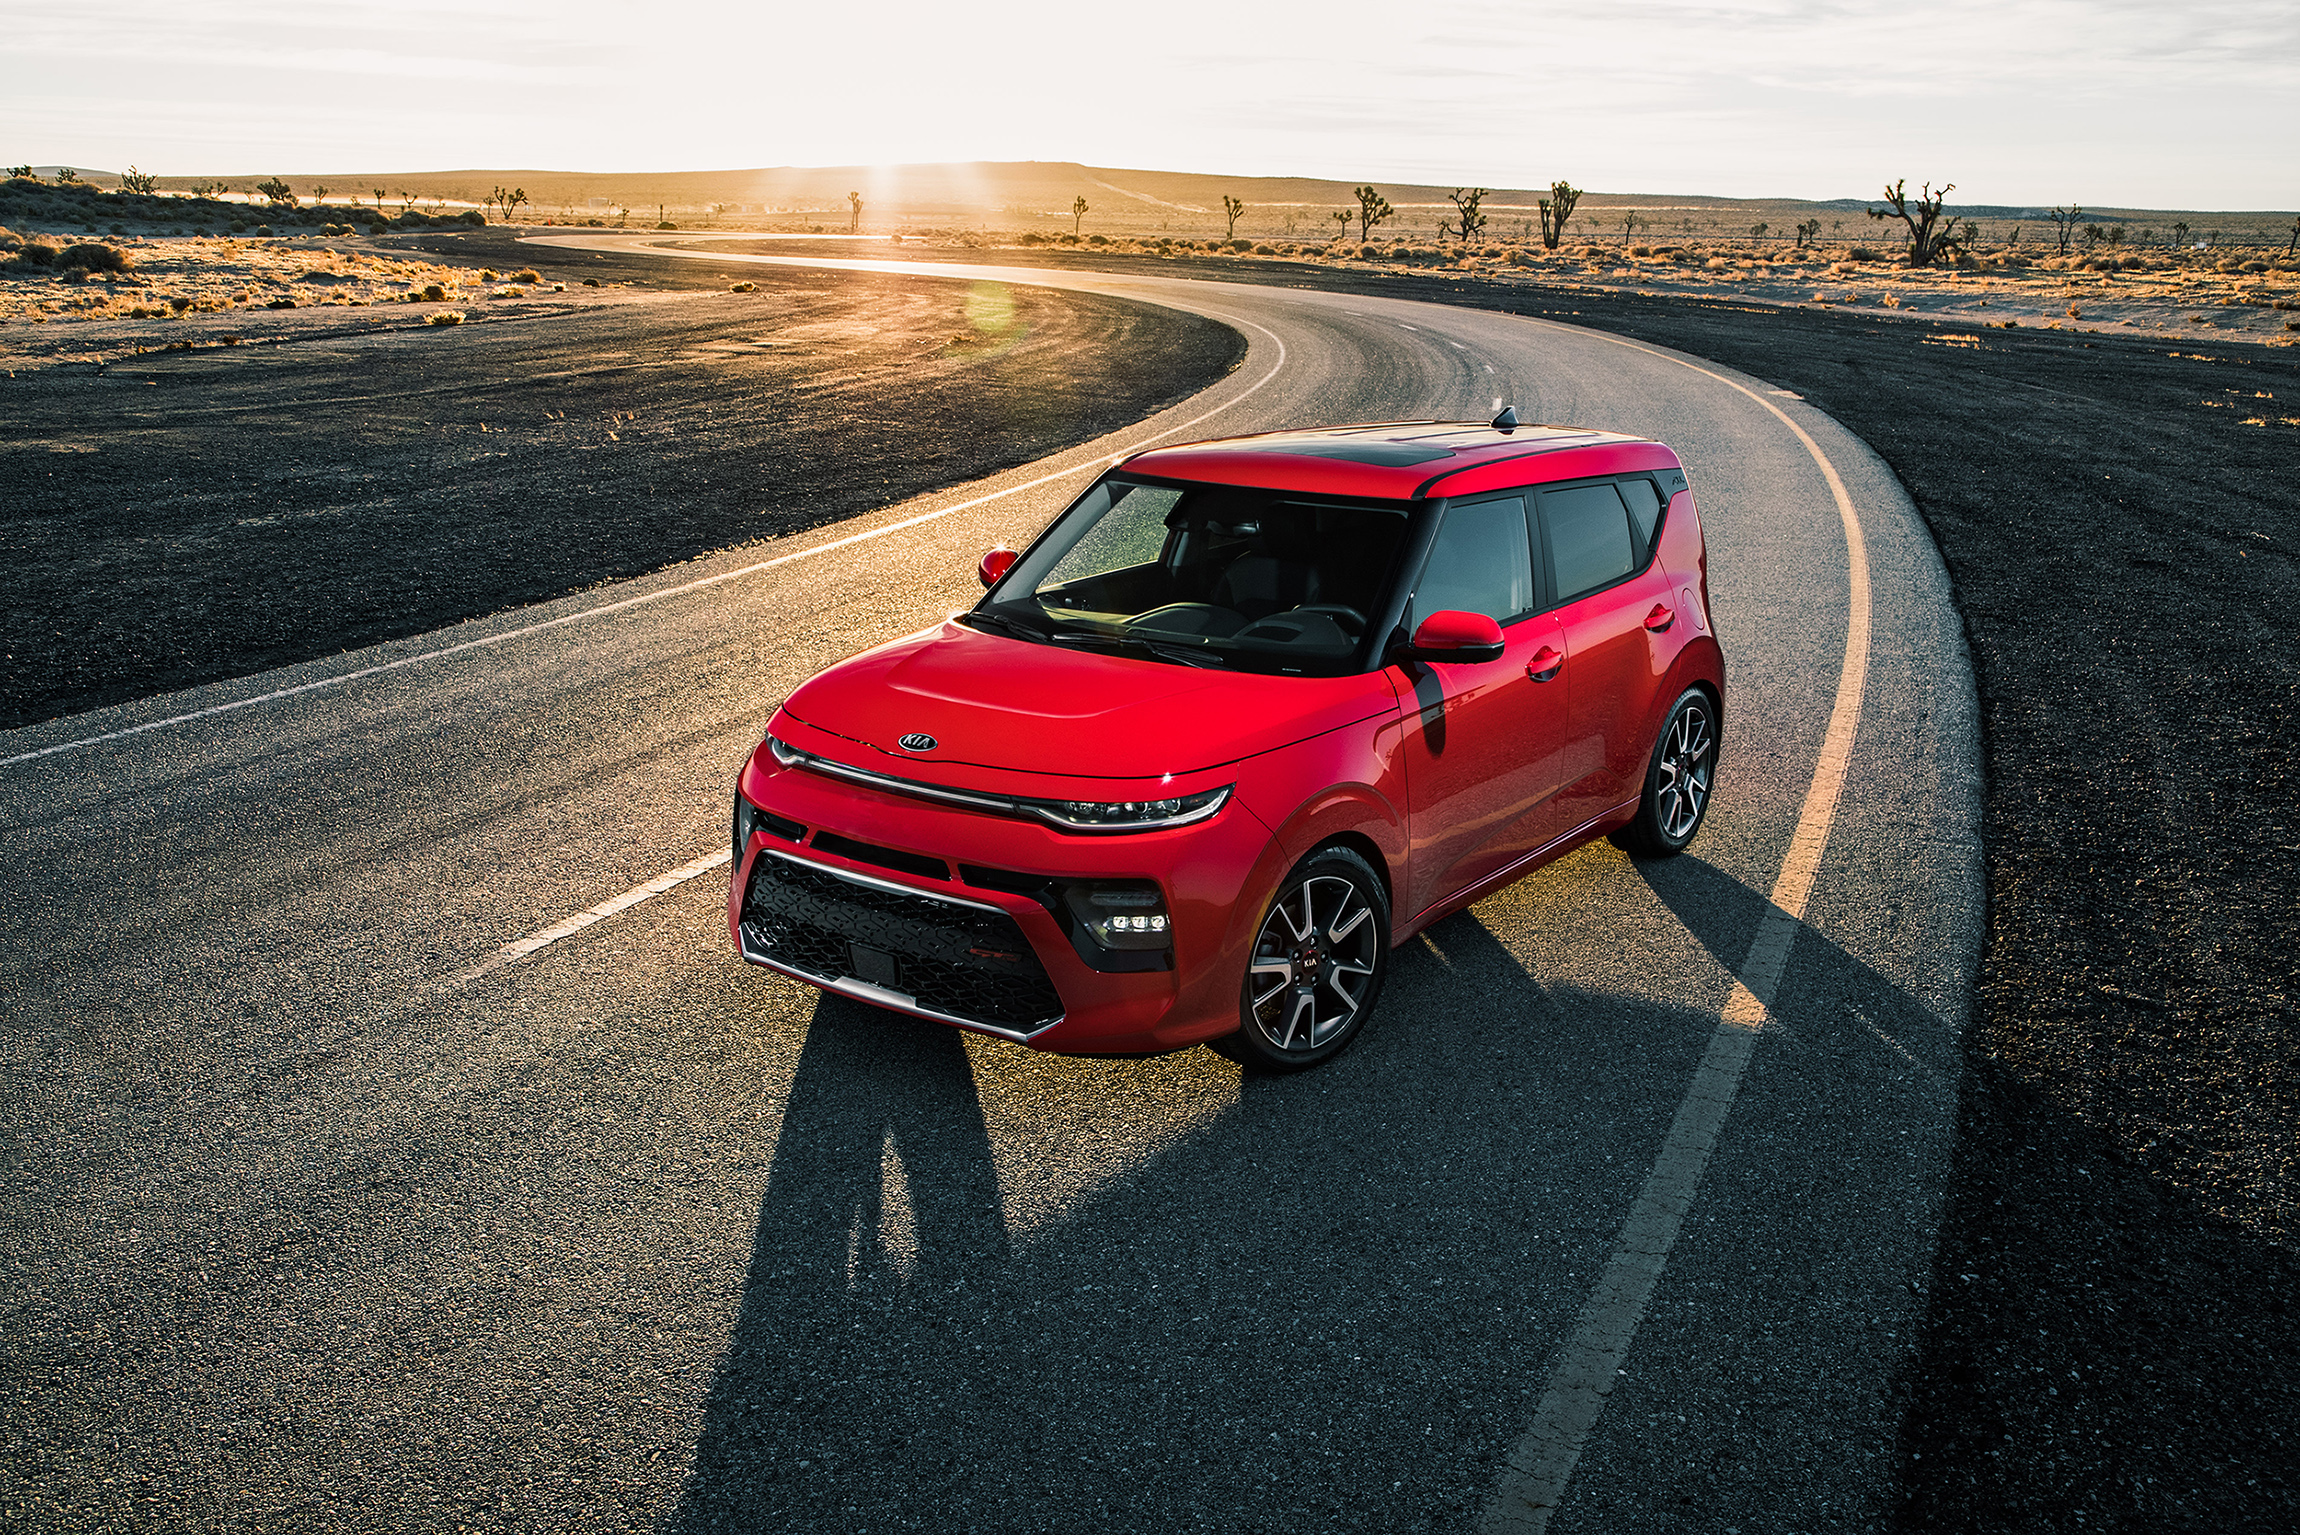 All-new 2020 Kia Soul makes world debut at the Los Angeles Auto Show.